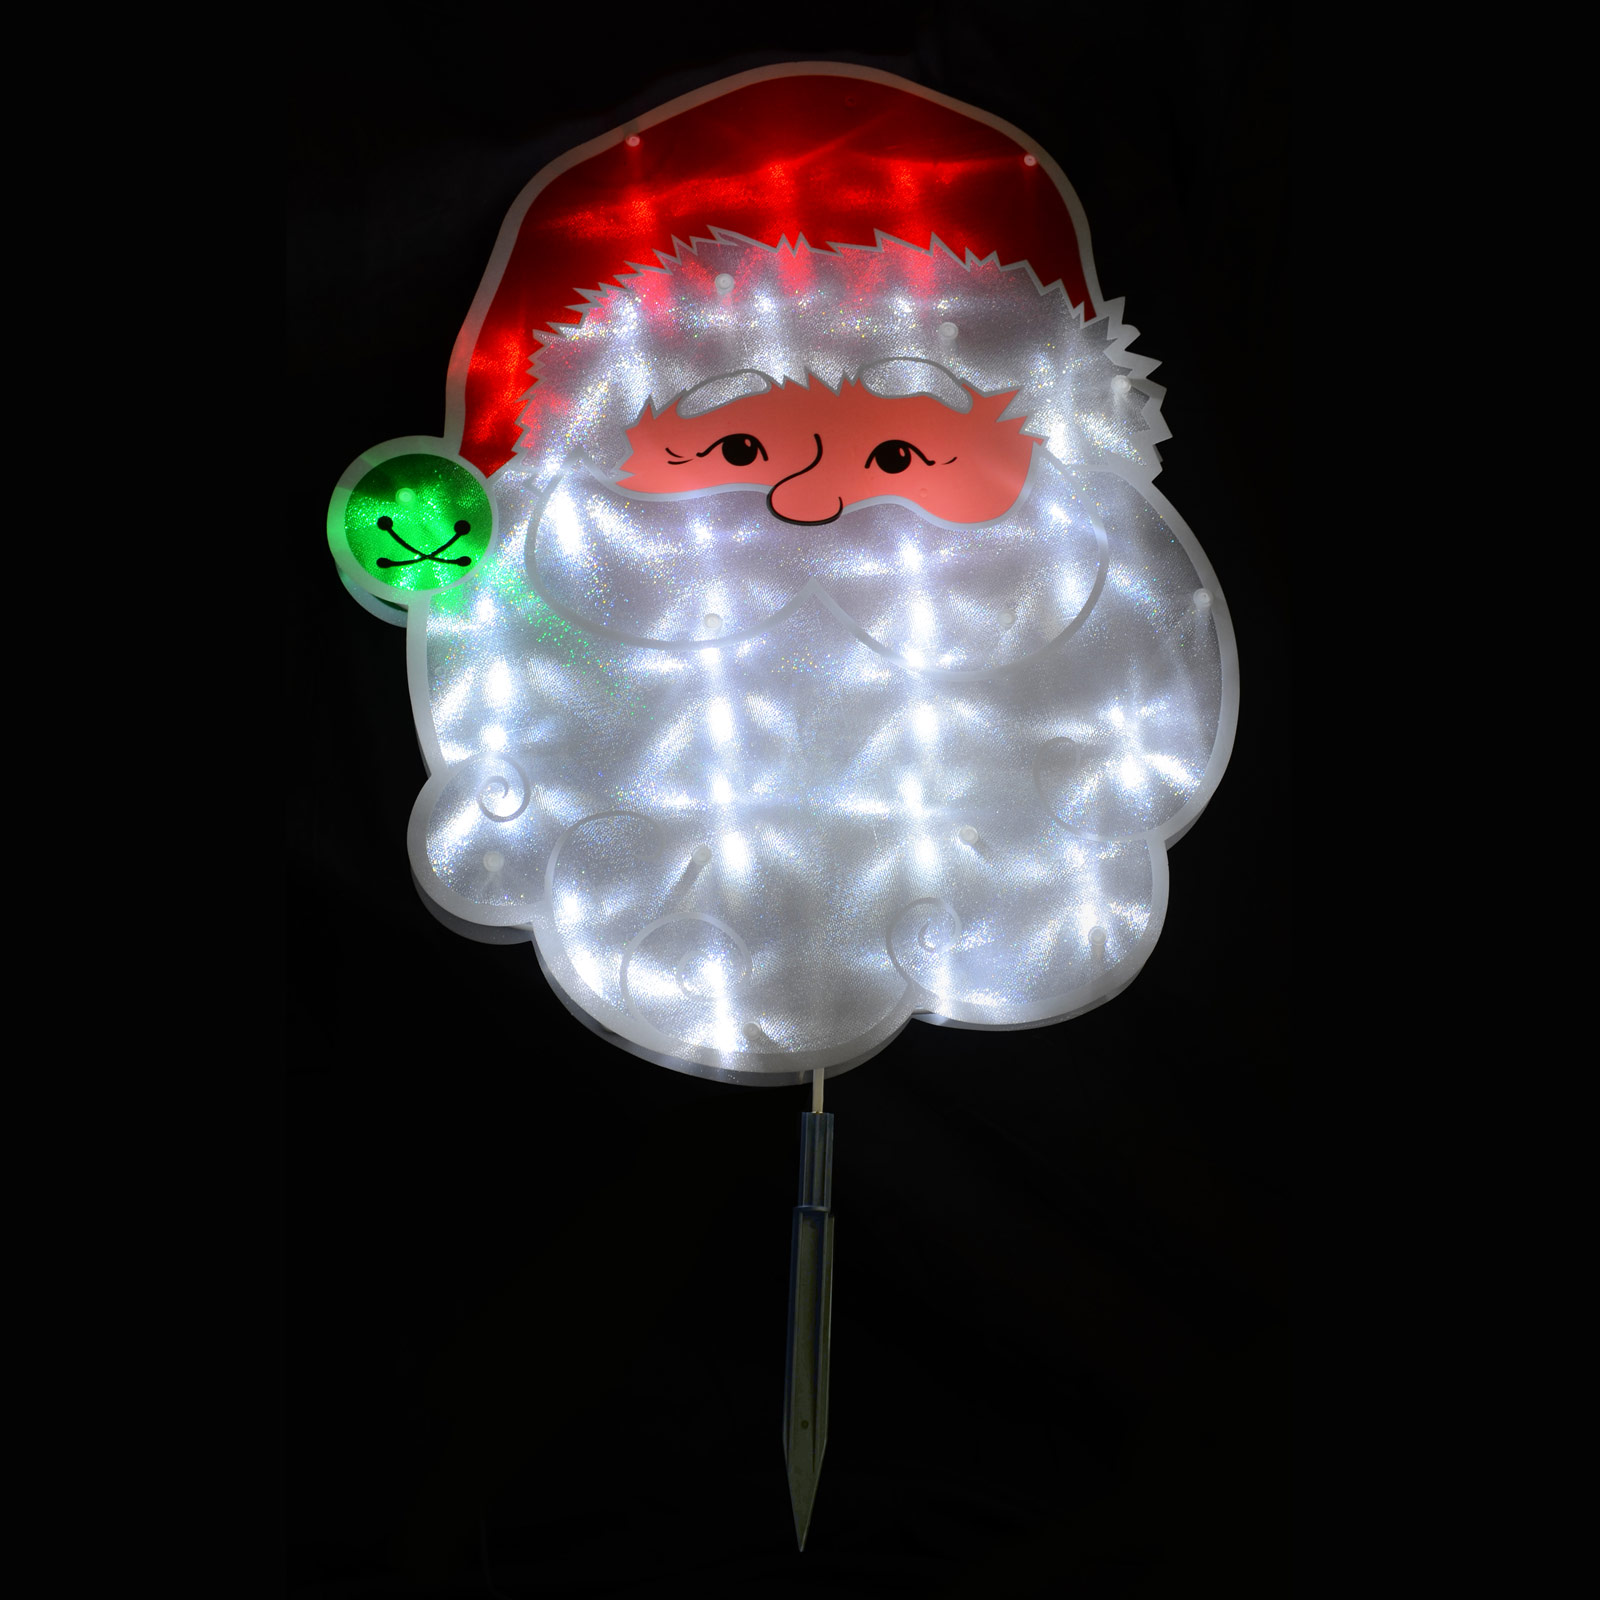 38 x 45cm pvc santa face garden stake plaque christmas outdoor decoration new ebay. Black Bedroom Furniture Sets. Home Design Ideas